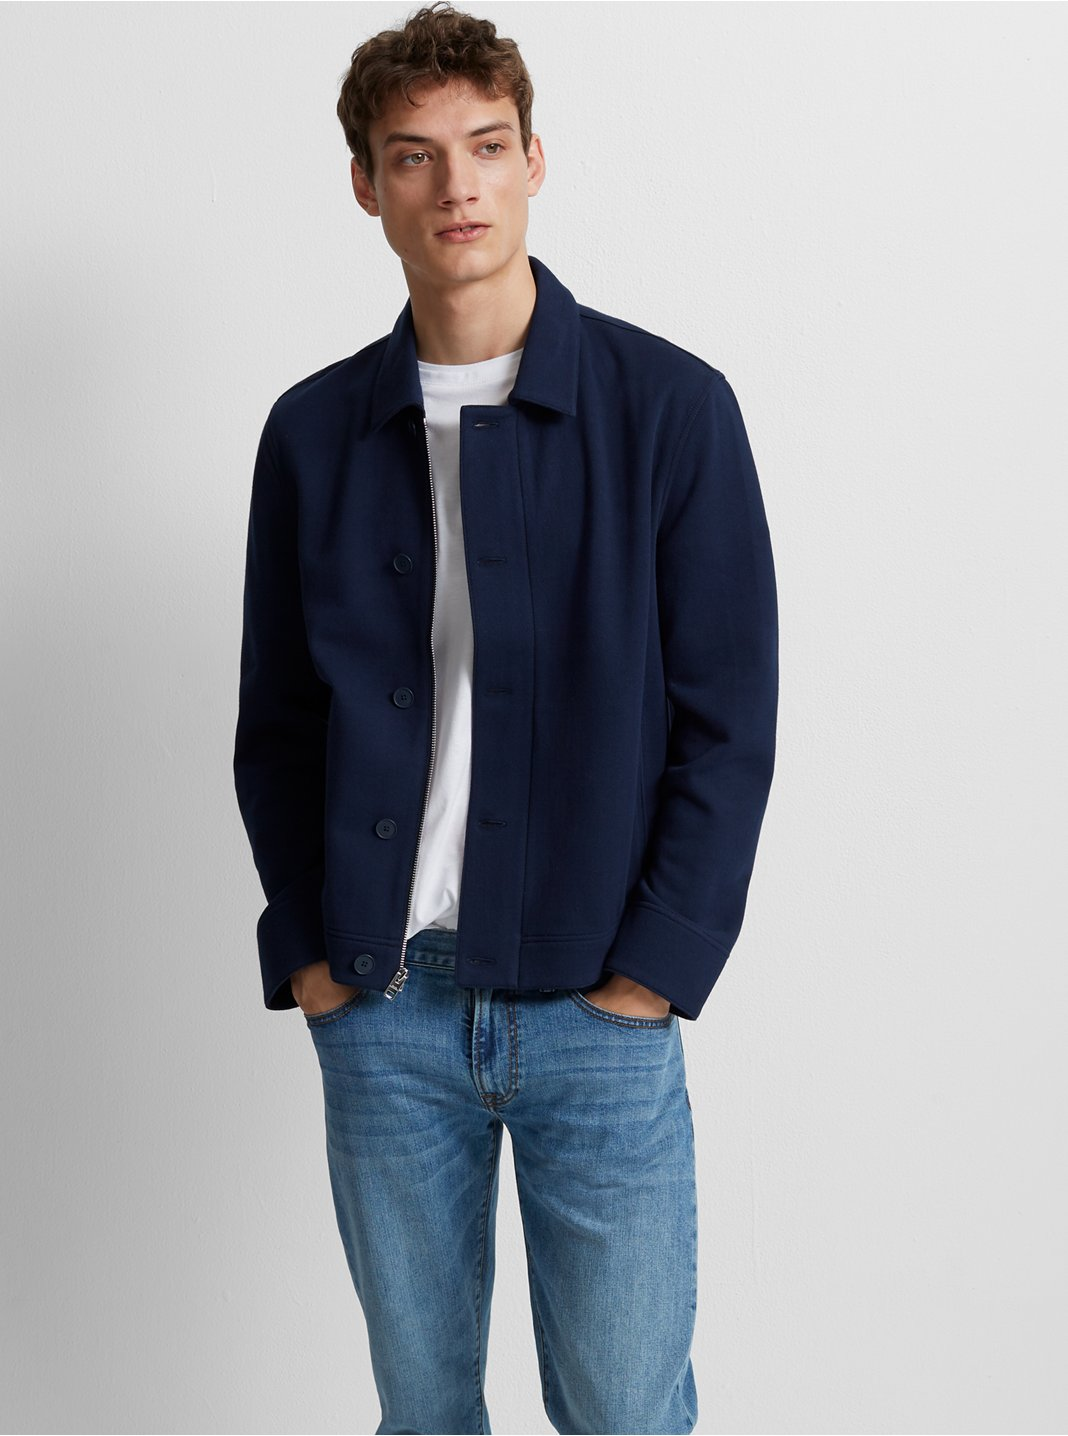 클럽 모나코 맨 집업 자켓 Club Monaco Zip Utility Jacket,Blue